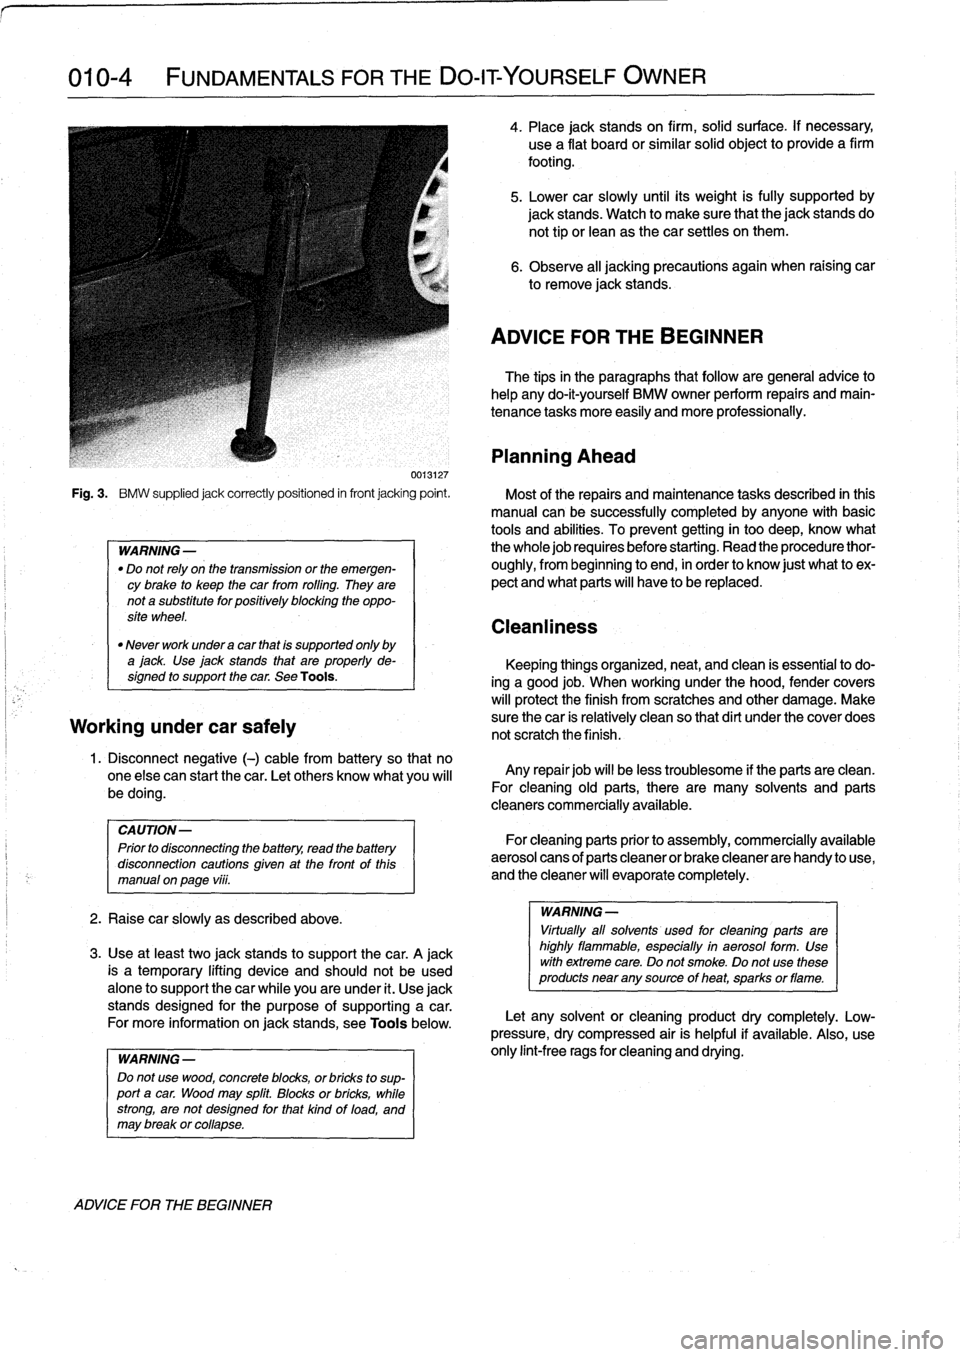 BMW 323i 1993 E36 Workshop Manual, Page 12